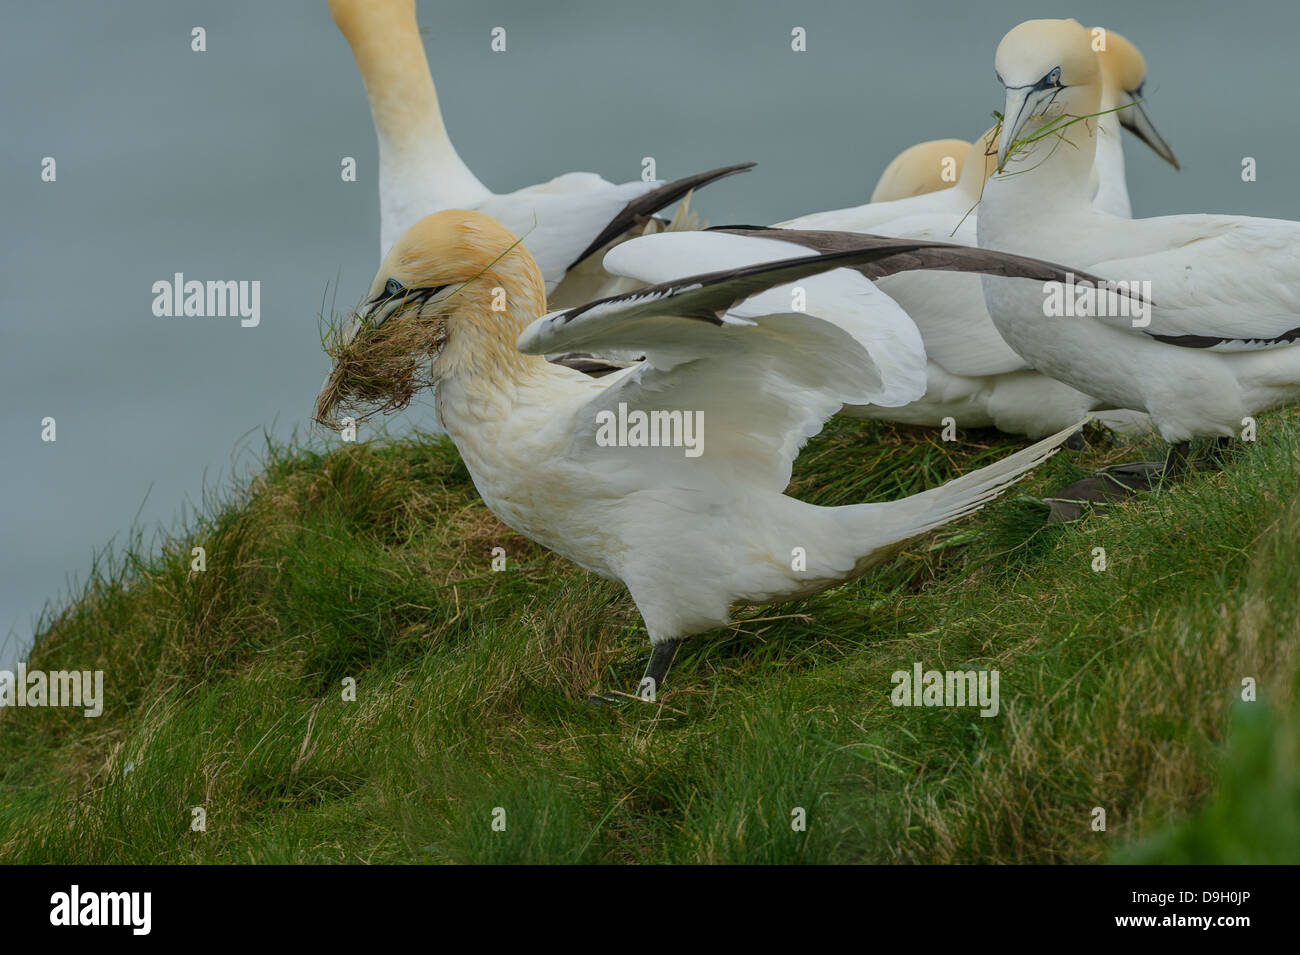 A group of Northern Gannets (Morus bassanus) gather grass for nests. The one nearest the camera shows oil/solvent - Stock Image